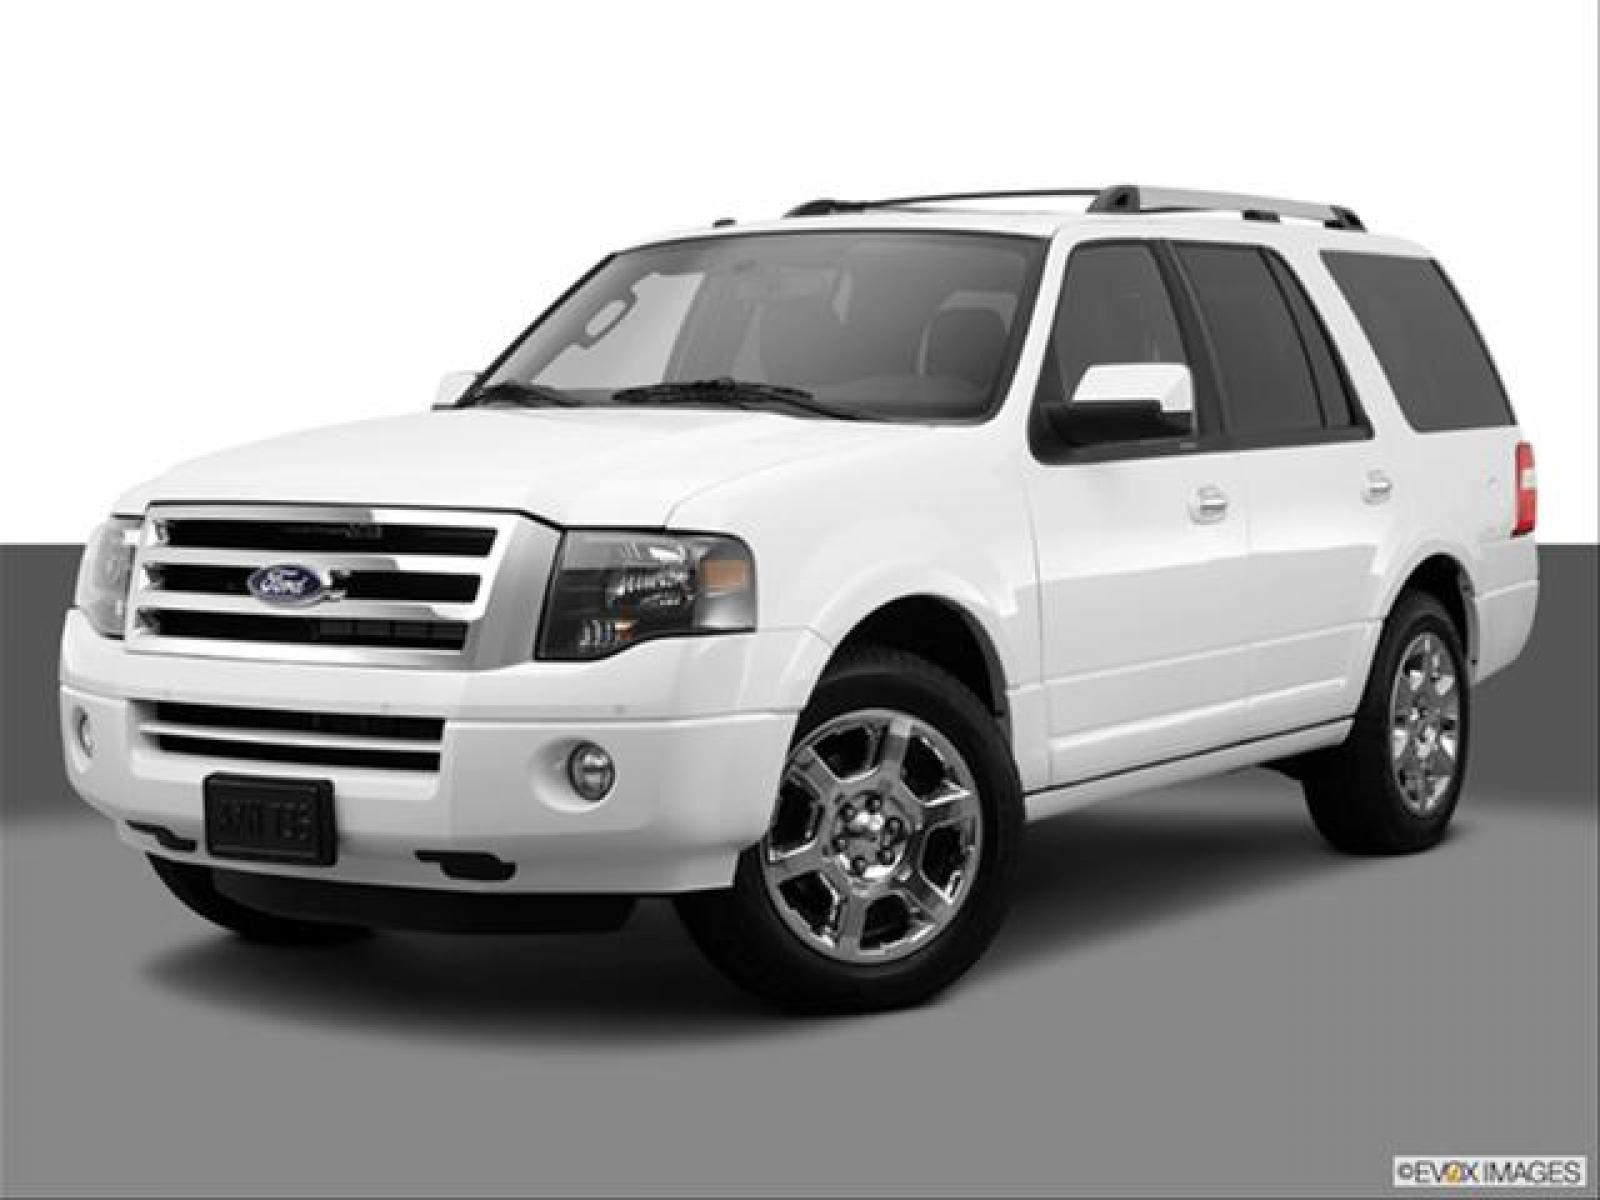 2014 ford expedition 5 800 1024 1280 1600 origin